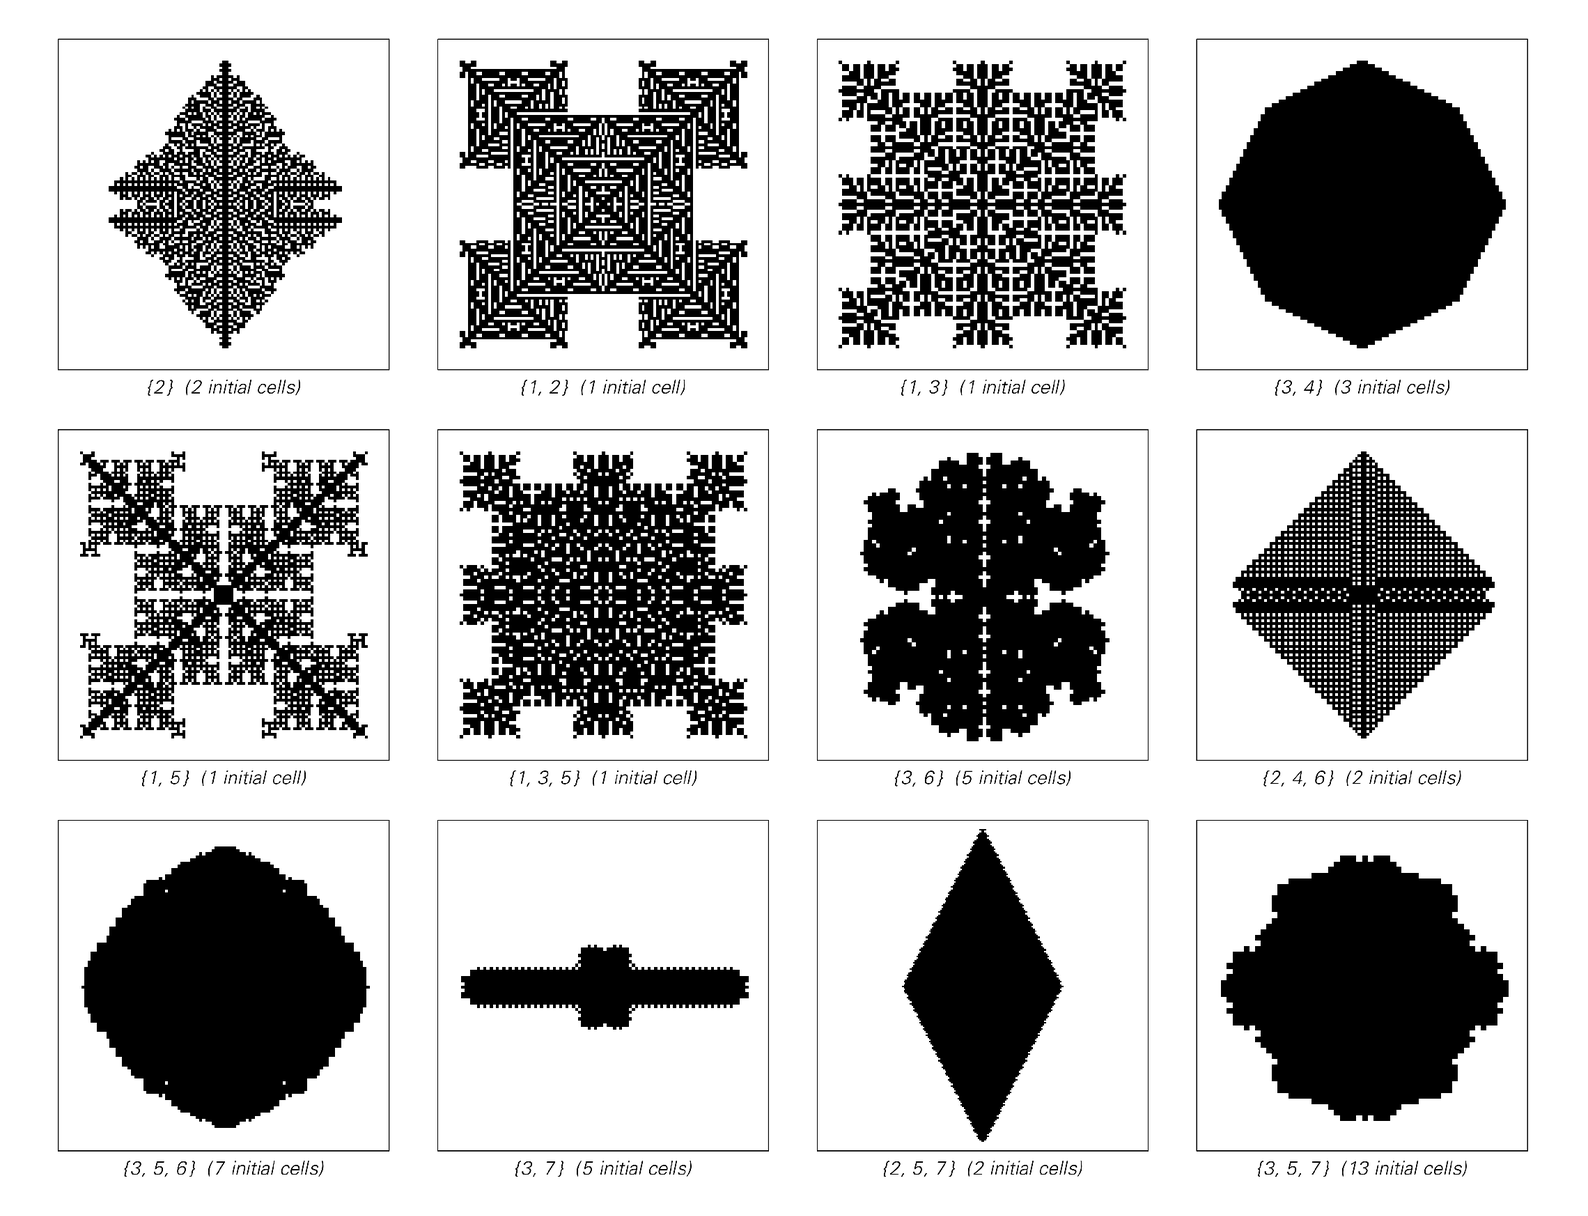 Examples of patterns produced by two-dimensional cellular automata set up to mimic the growth of crystals. The rules in each case take a cell to become black if the specified number of its neighbors (including diagonals) on a square grid are black on the step before. These rules are such that once a cell has become black, corresponding to solid, it never reverts to white again. In each case a row of initial black cells of the specified length was used.